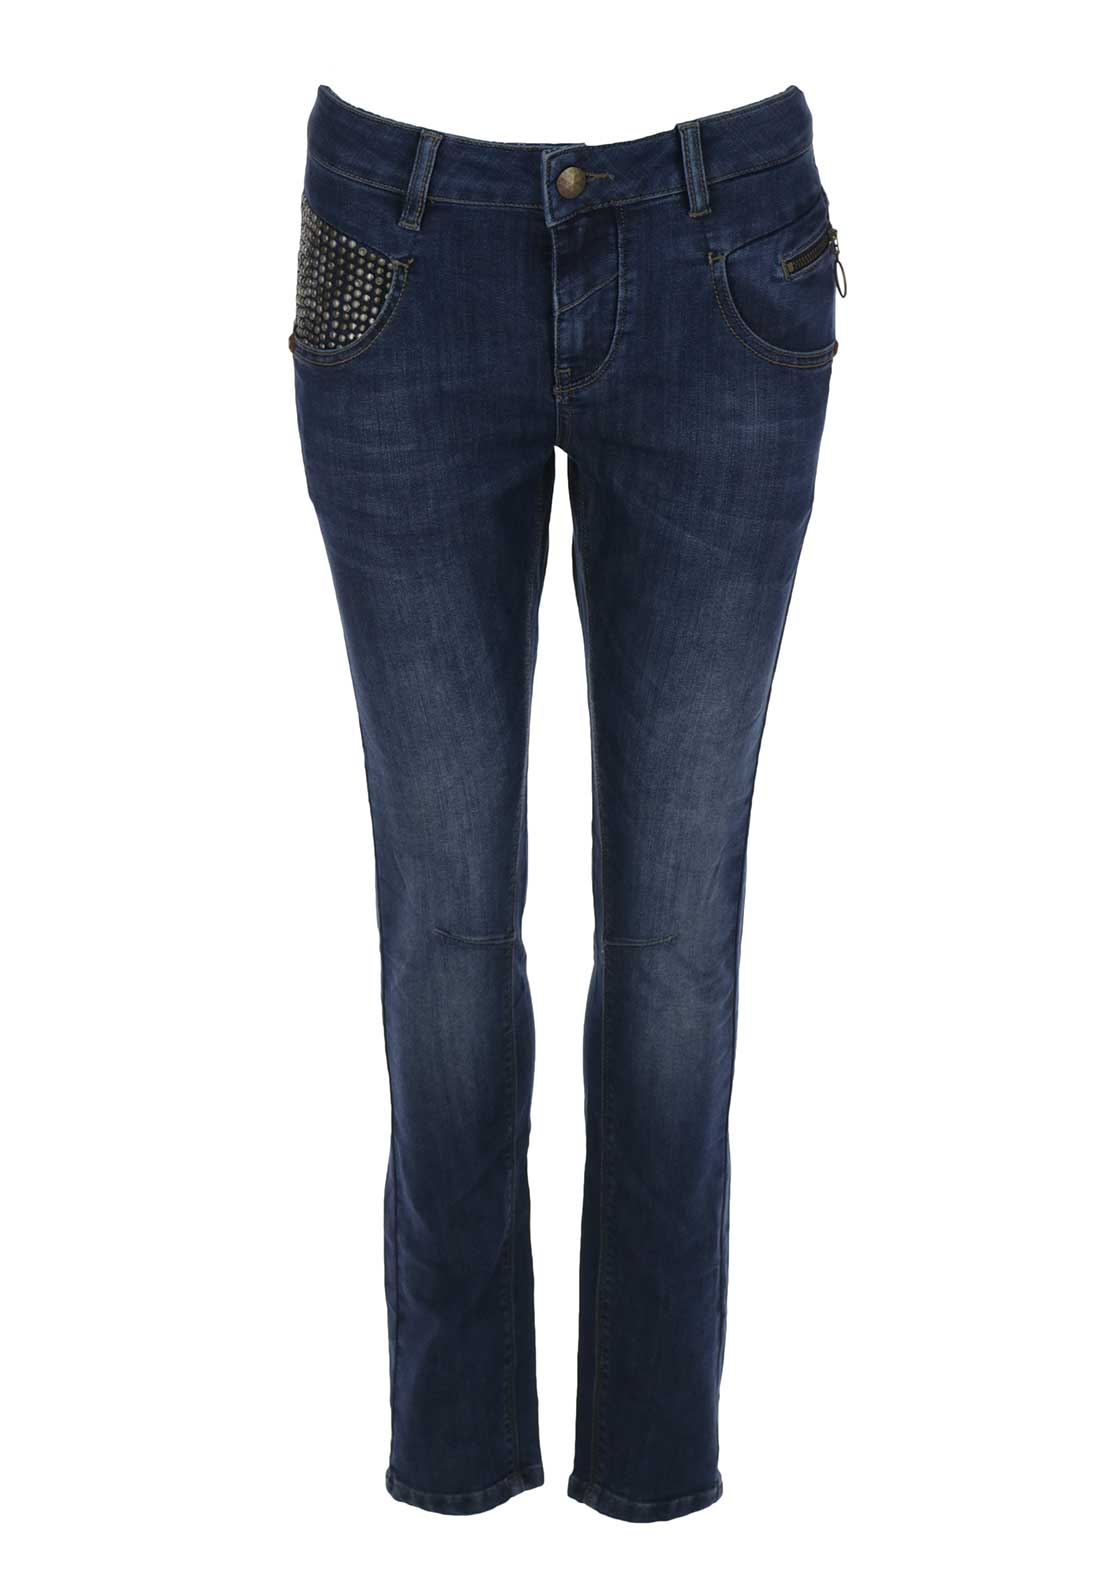 Mos Mosh Nelly York Stud Embellished Slim Jeans, Blue Denim